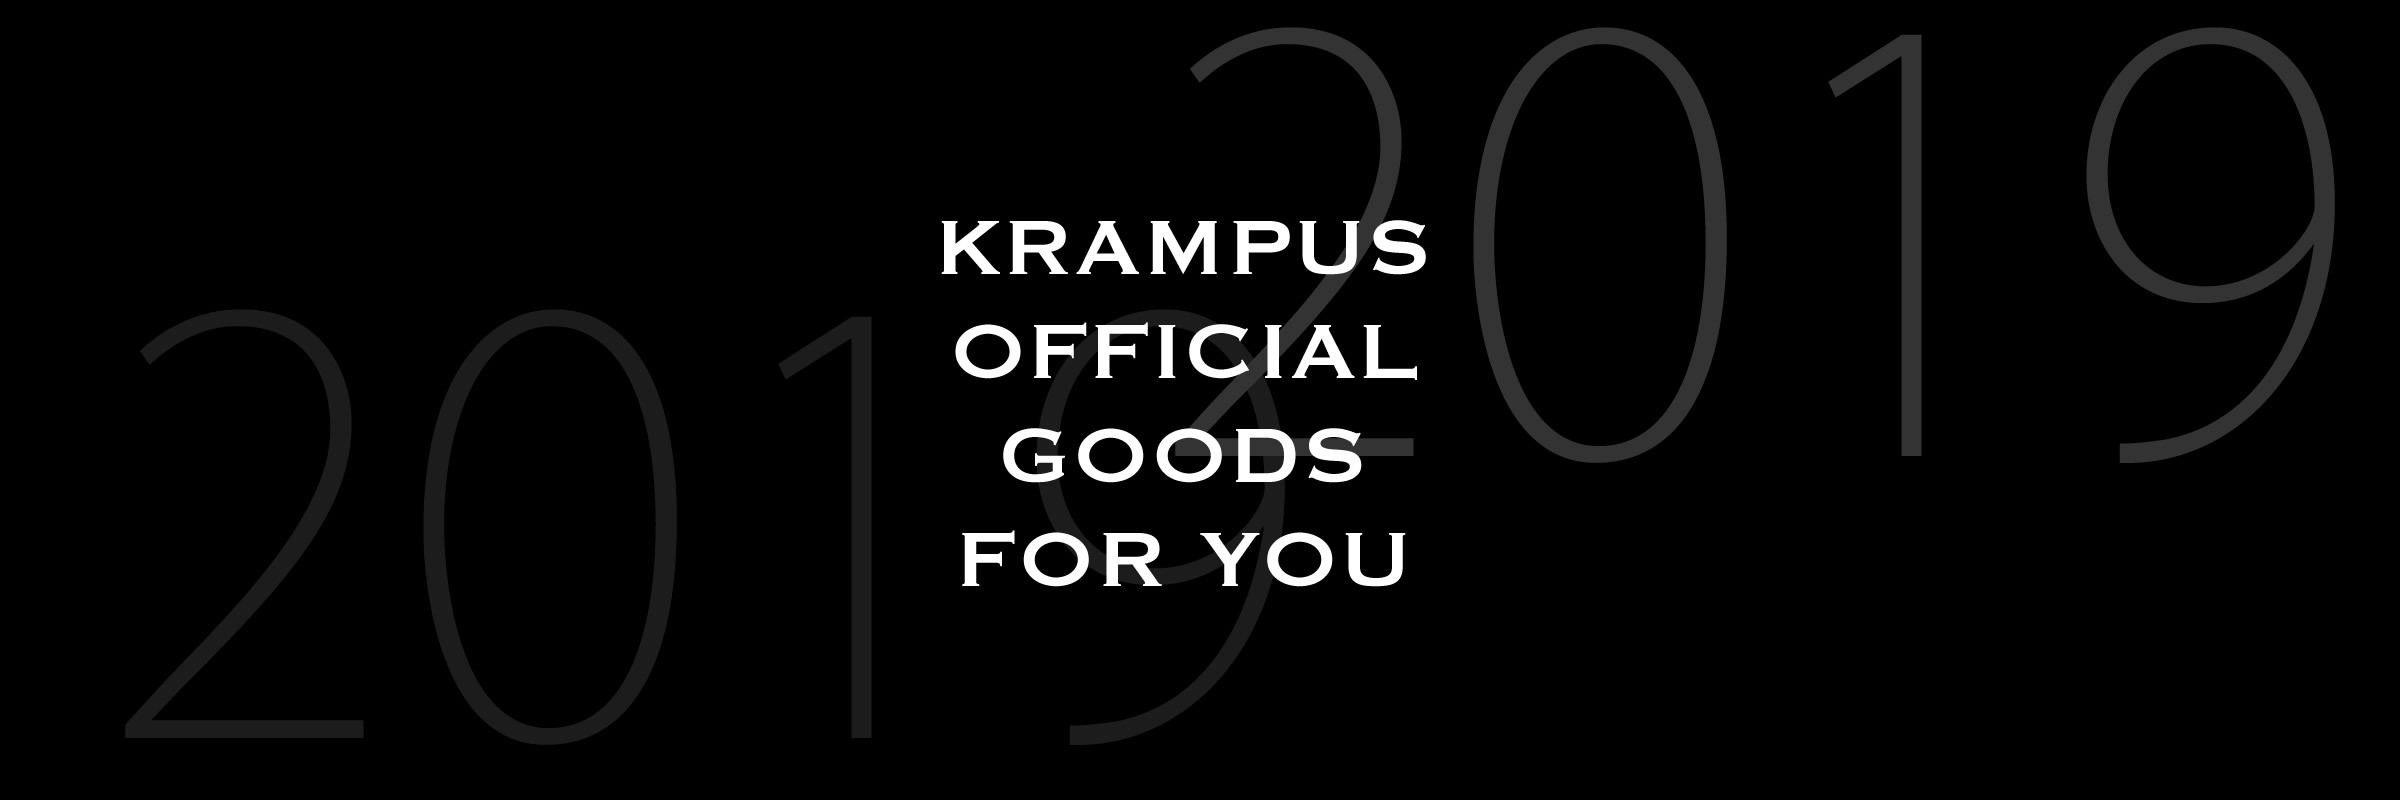 KRAMPUS OFFICIAL GOODS FOR YOU